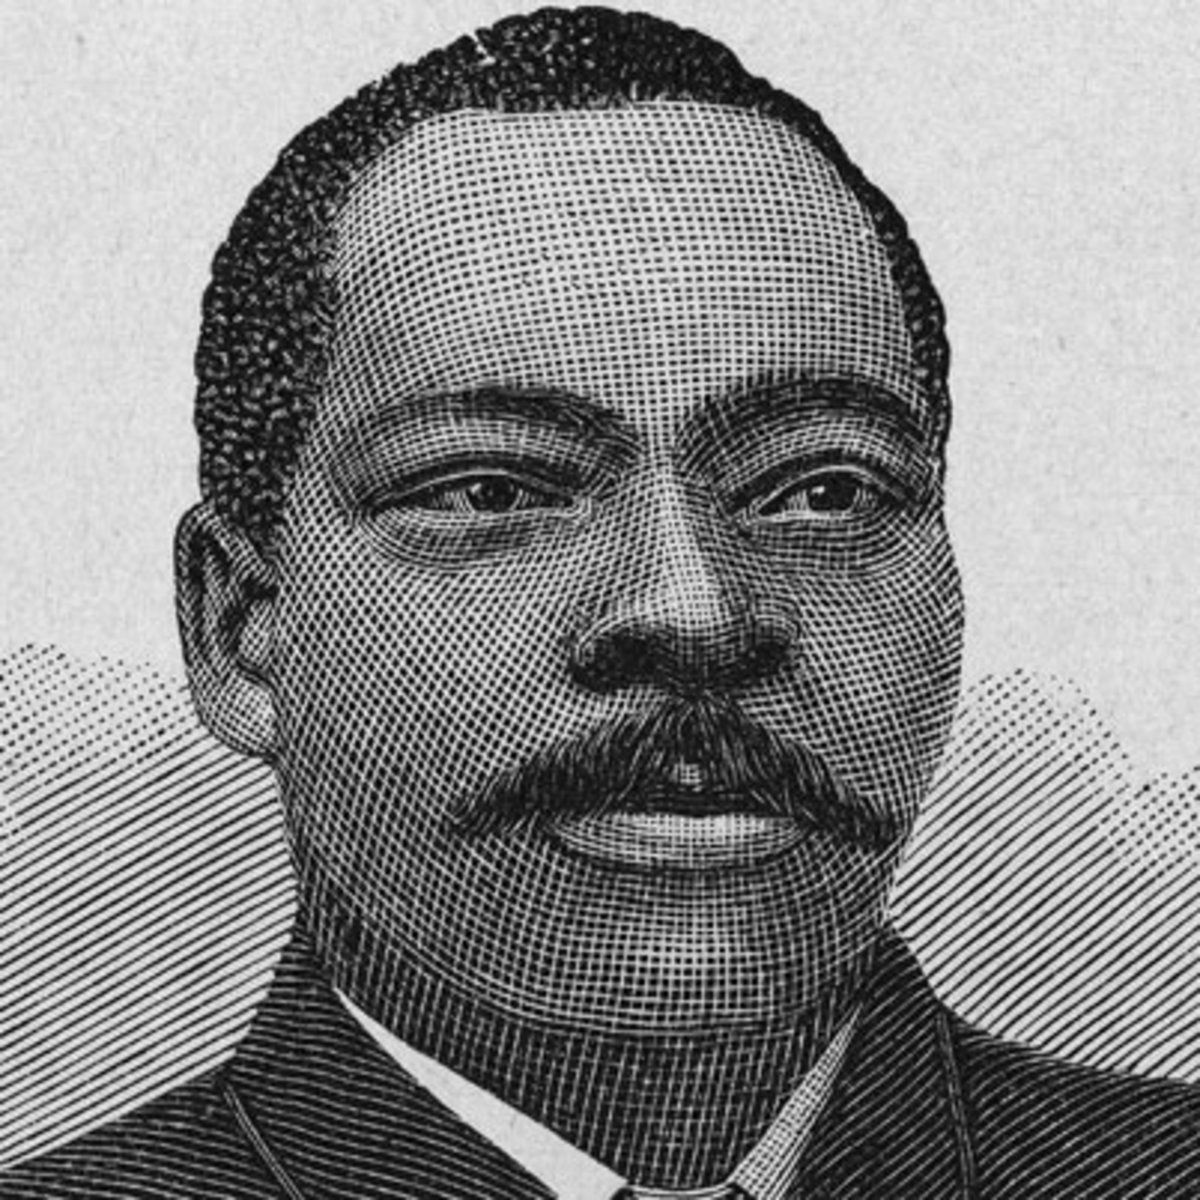 Known As Black Edison Granville Woods Was An African